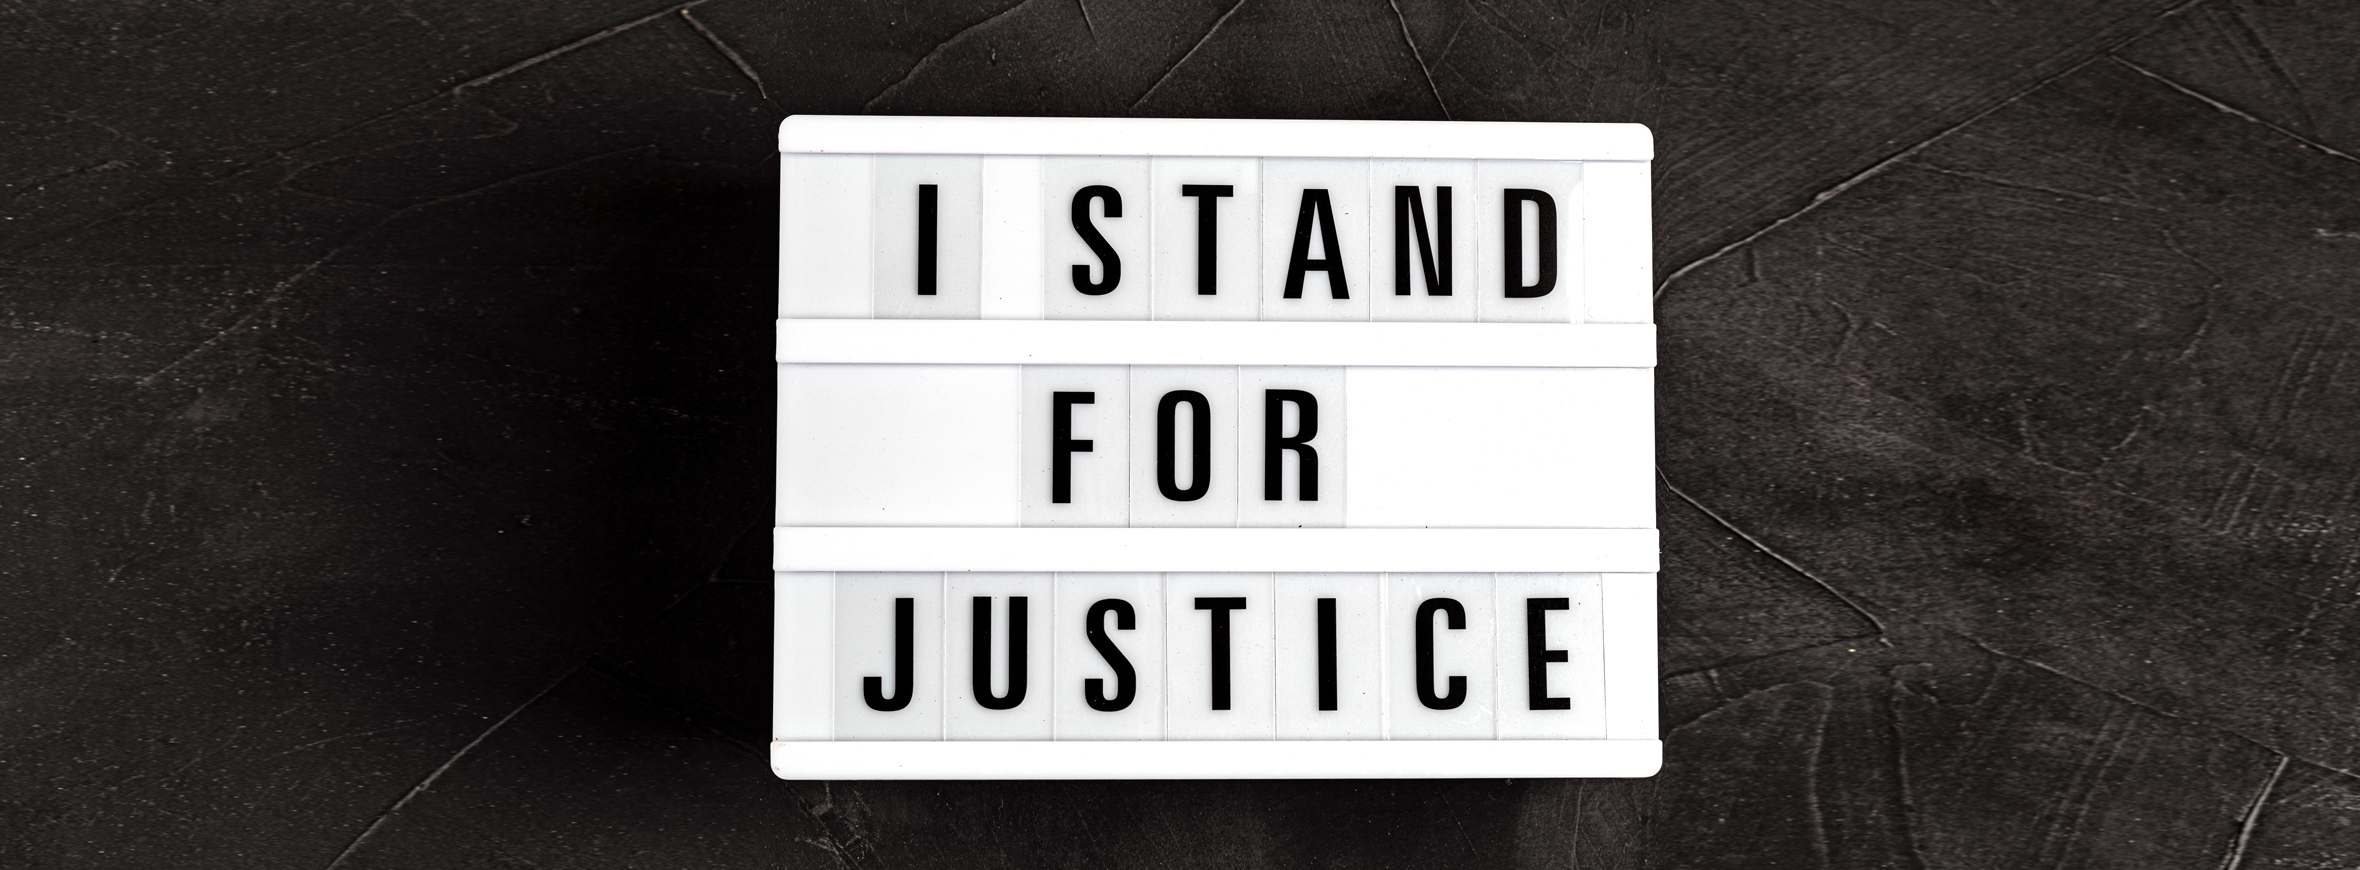 Marketing for 2021: Implementing Social Justice into Ad Campaigns